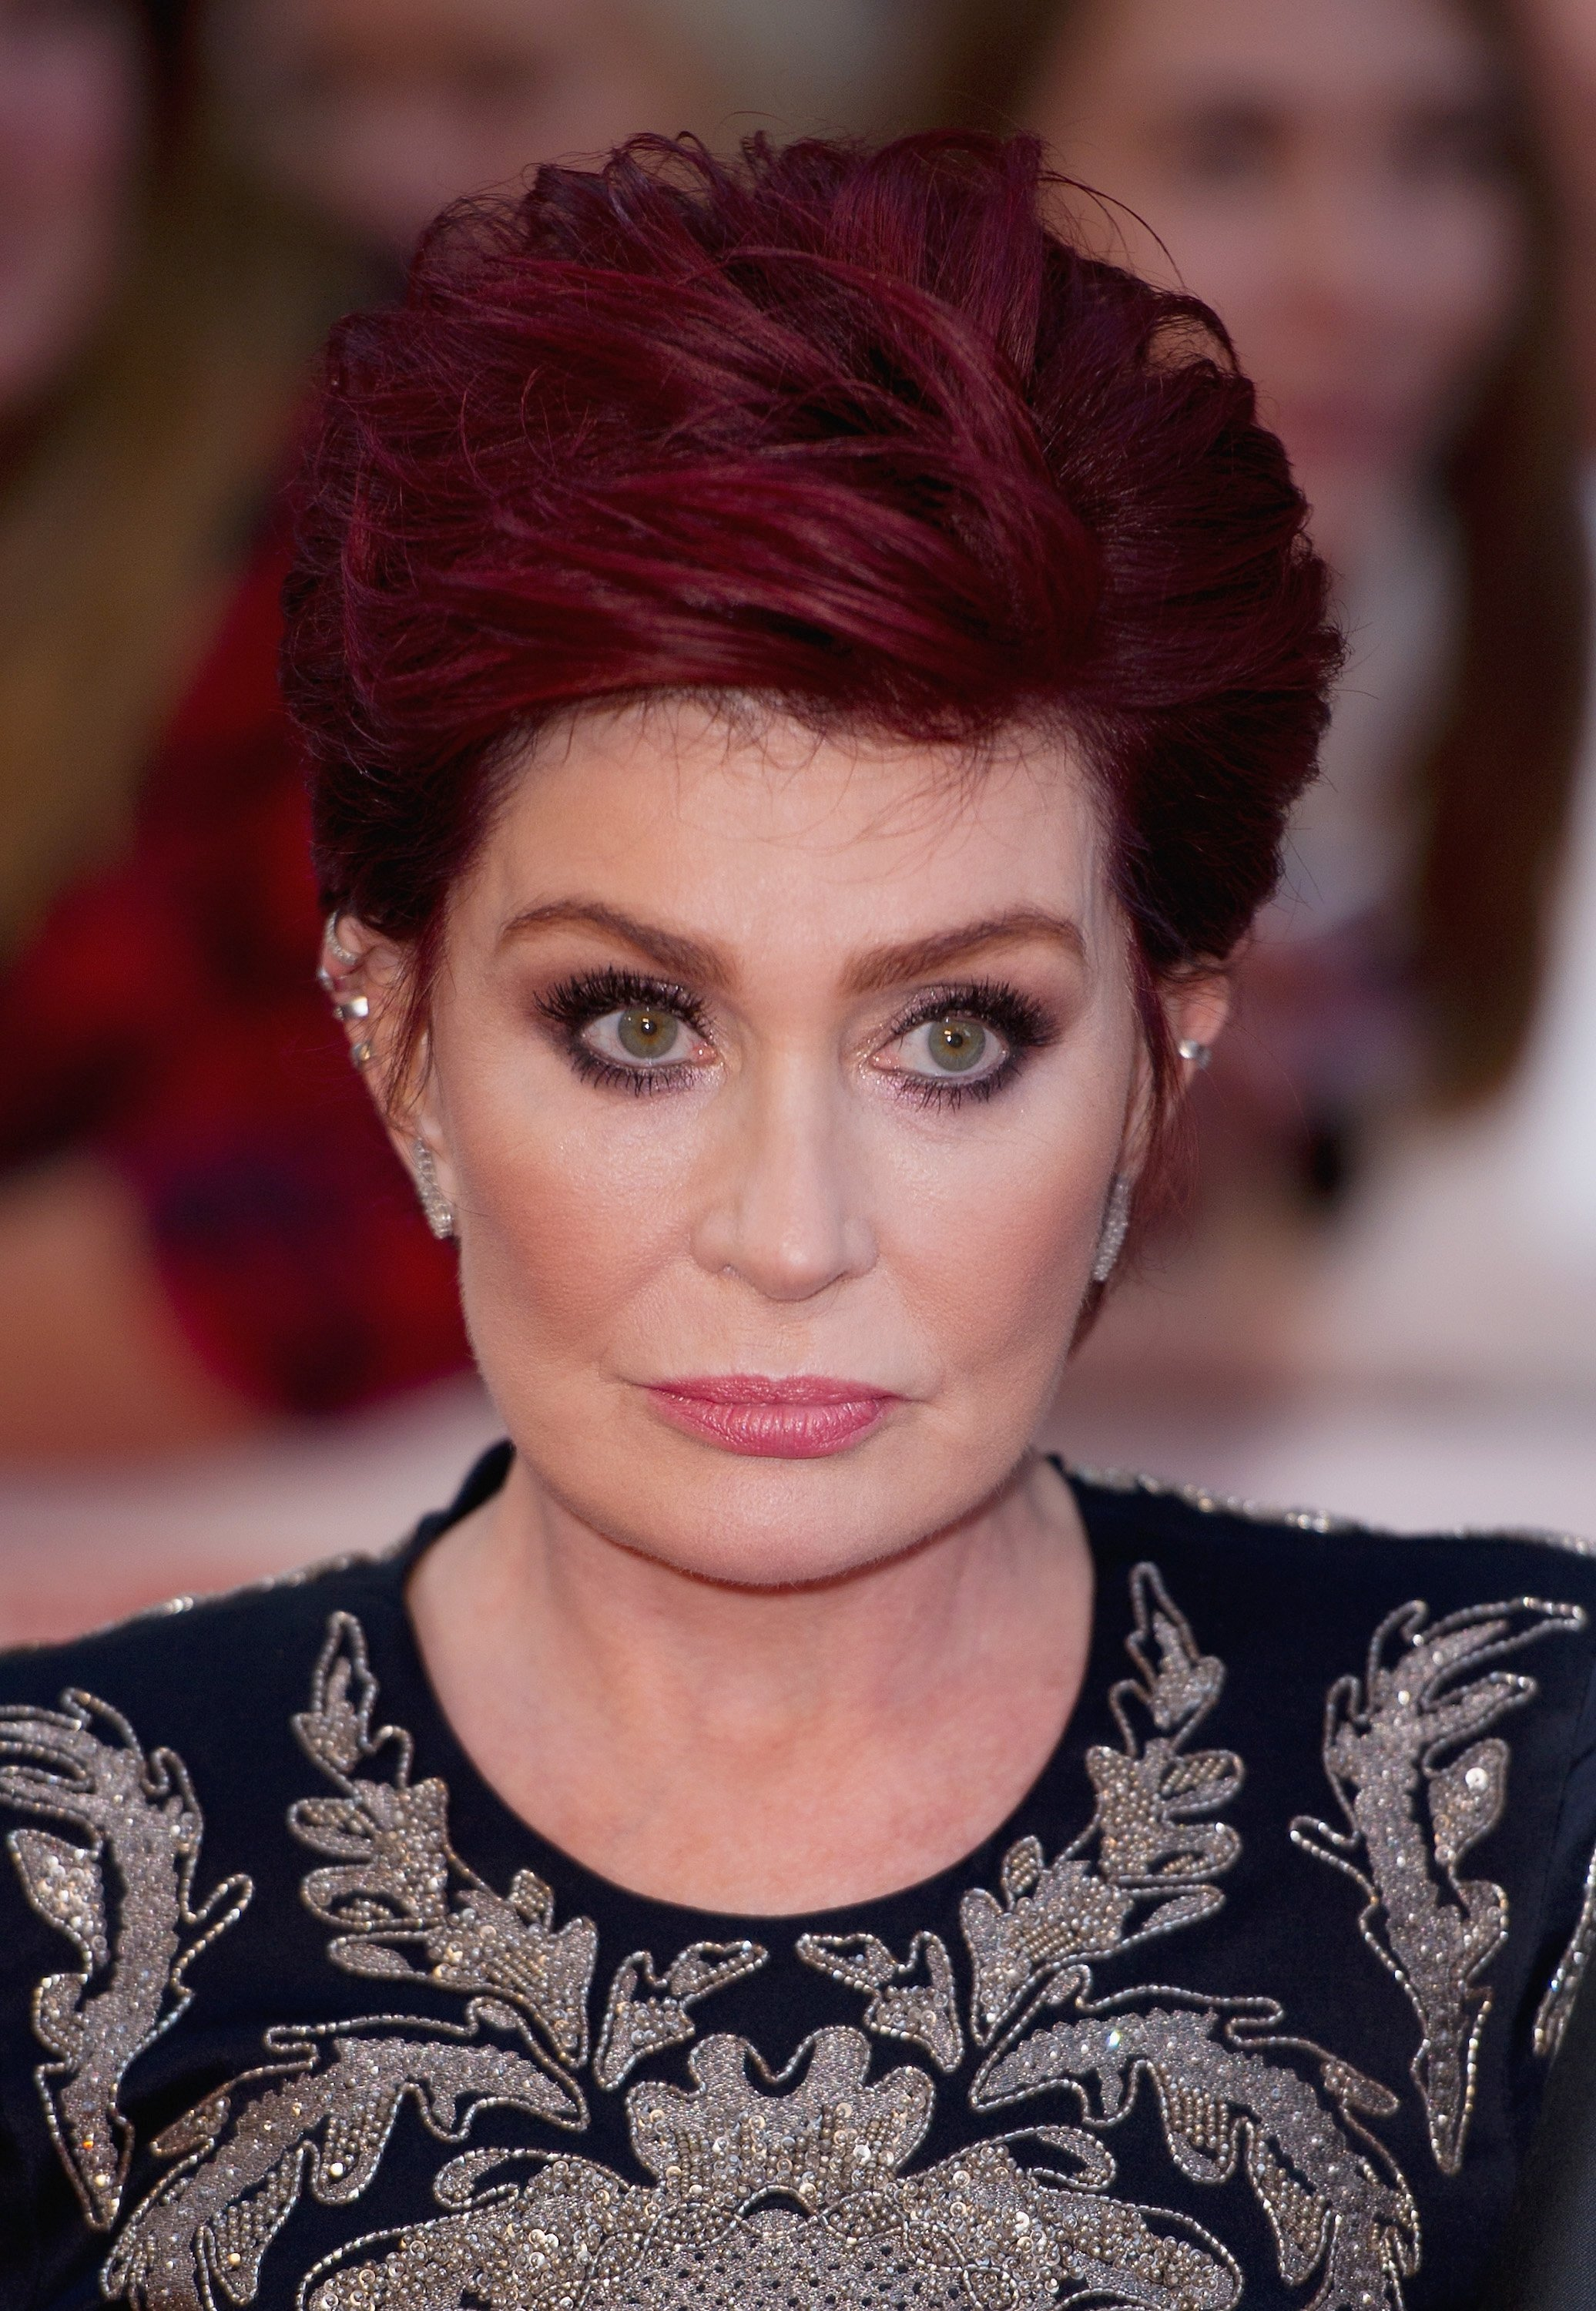 Sharon Osbourne at the Pride of Britain awards at The Grosvenor House Hotel on September 28, 2015 in London, England | Photo: Getty Images